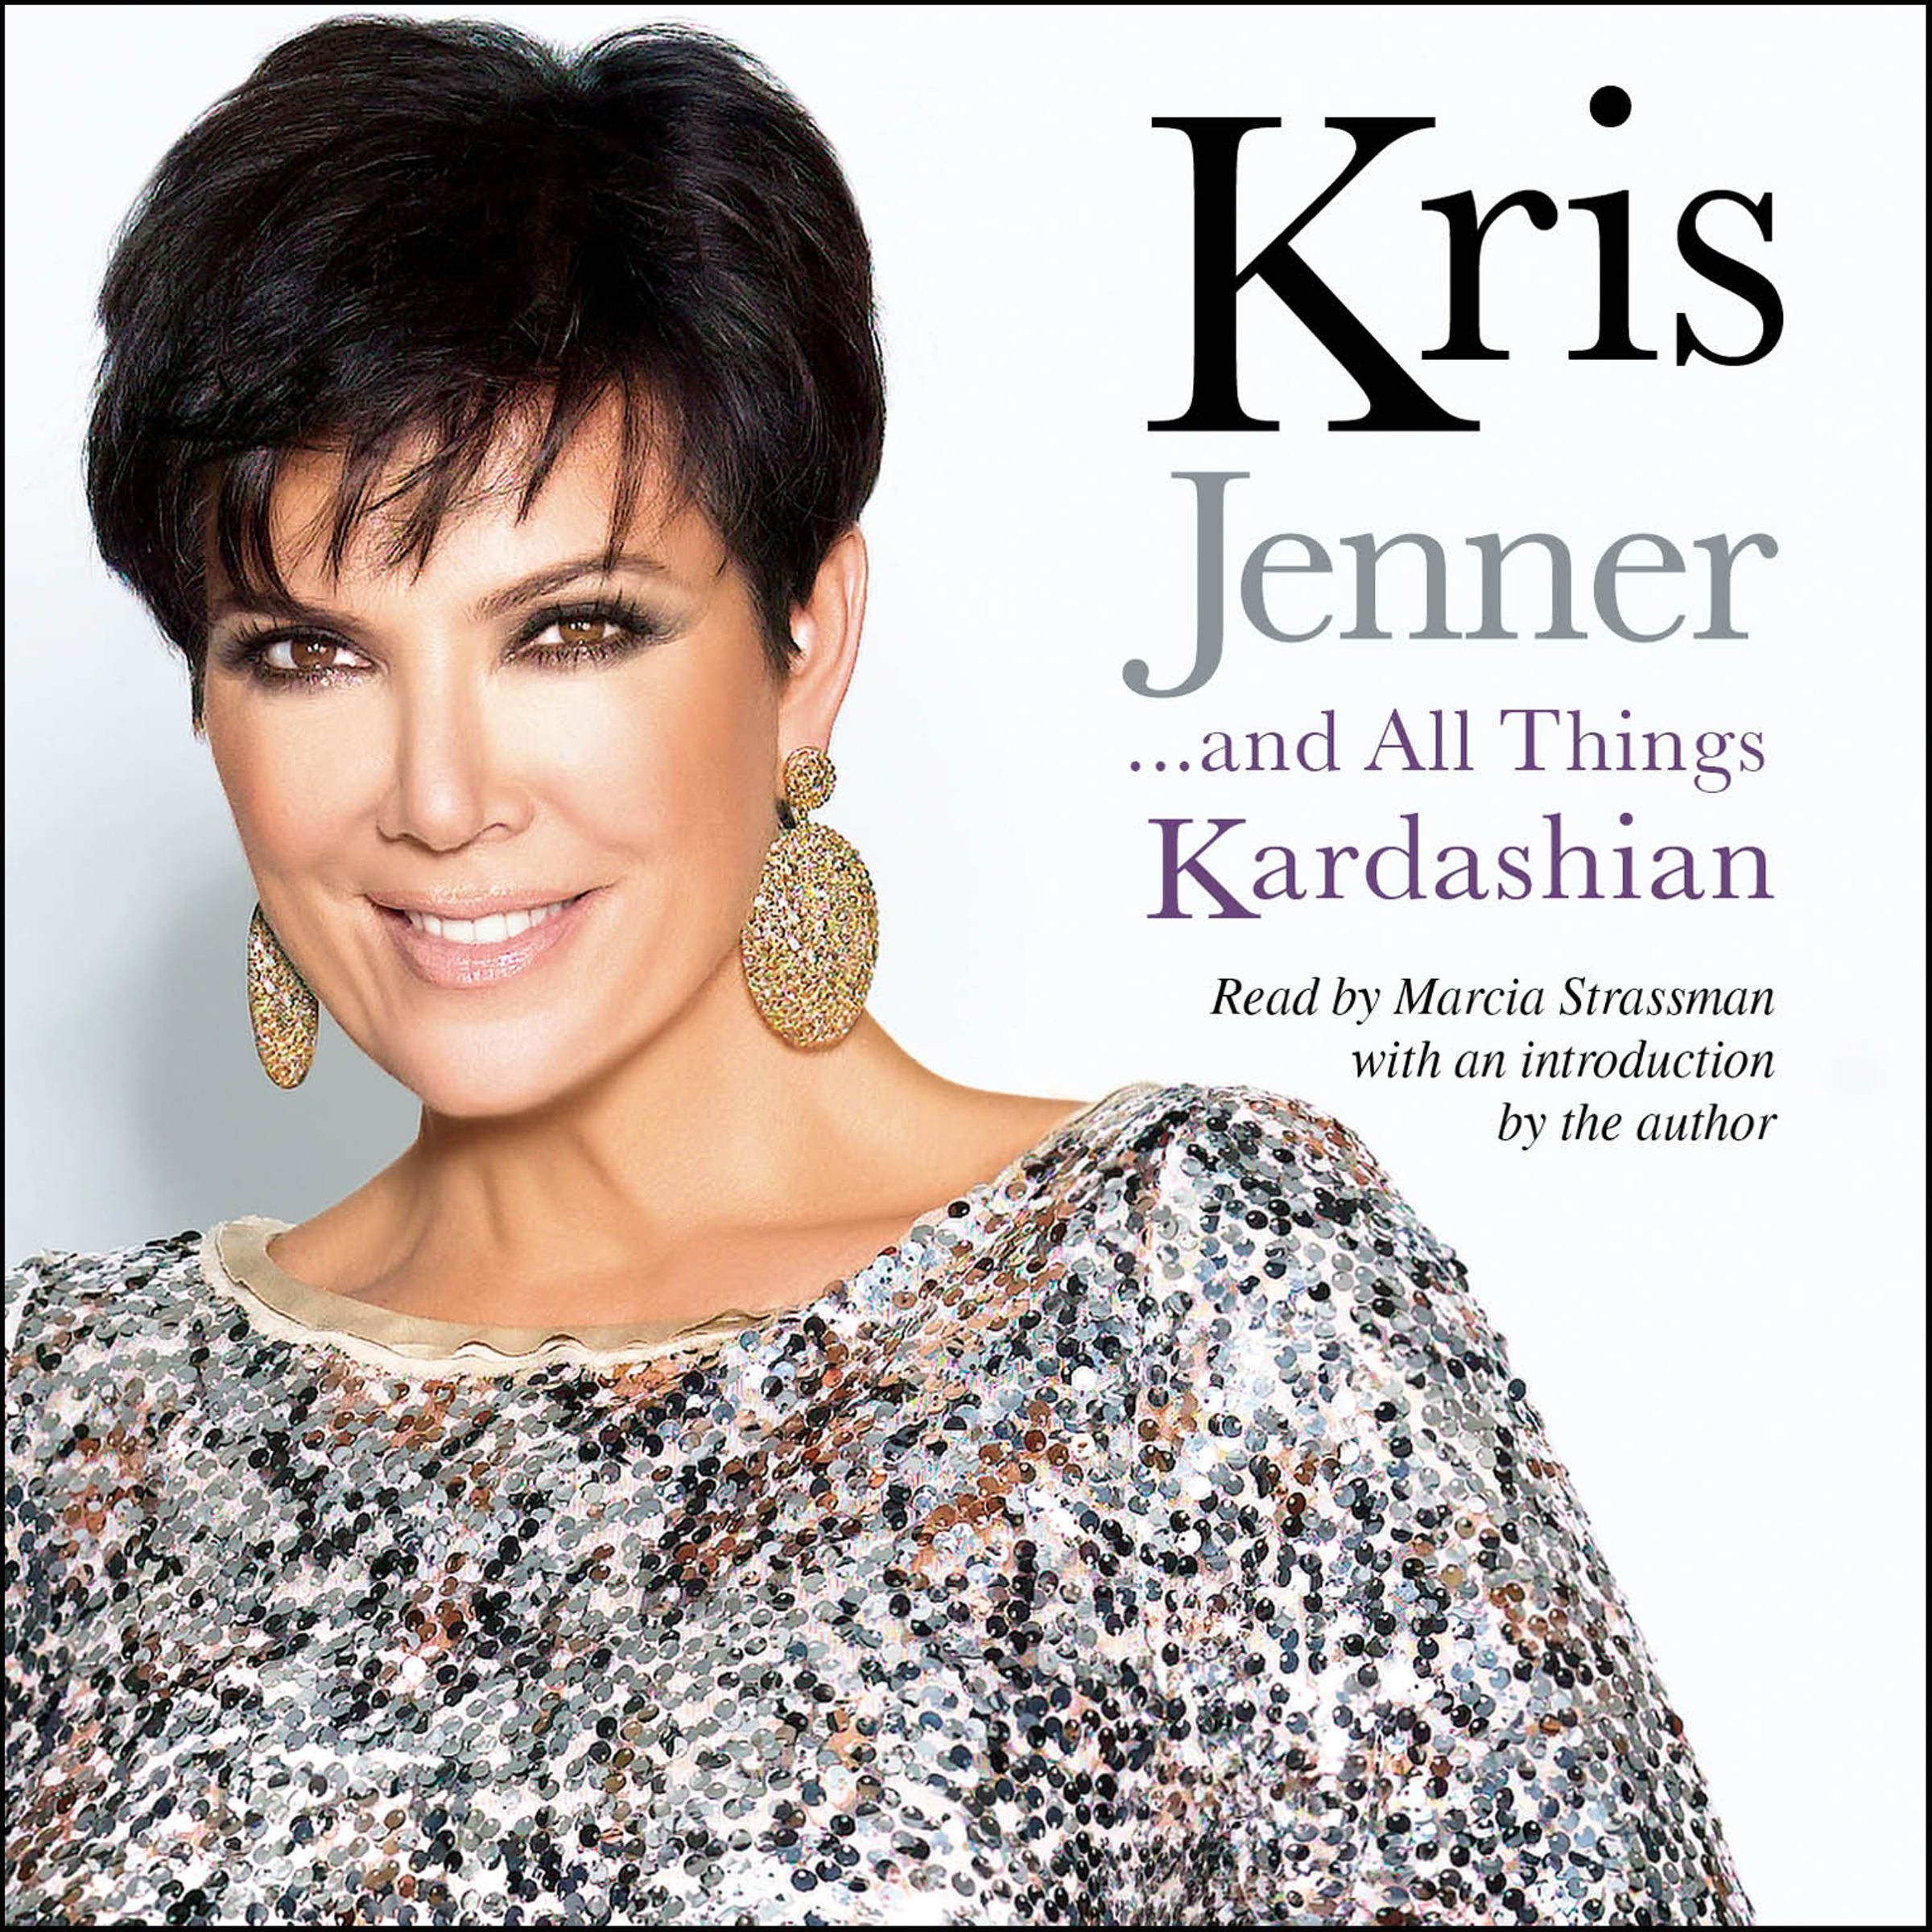 Kris jenner and all things kardashian 9781442346932 hr